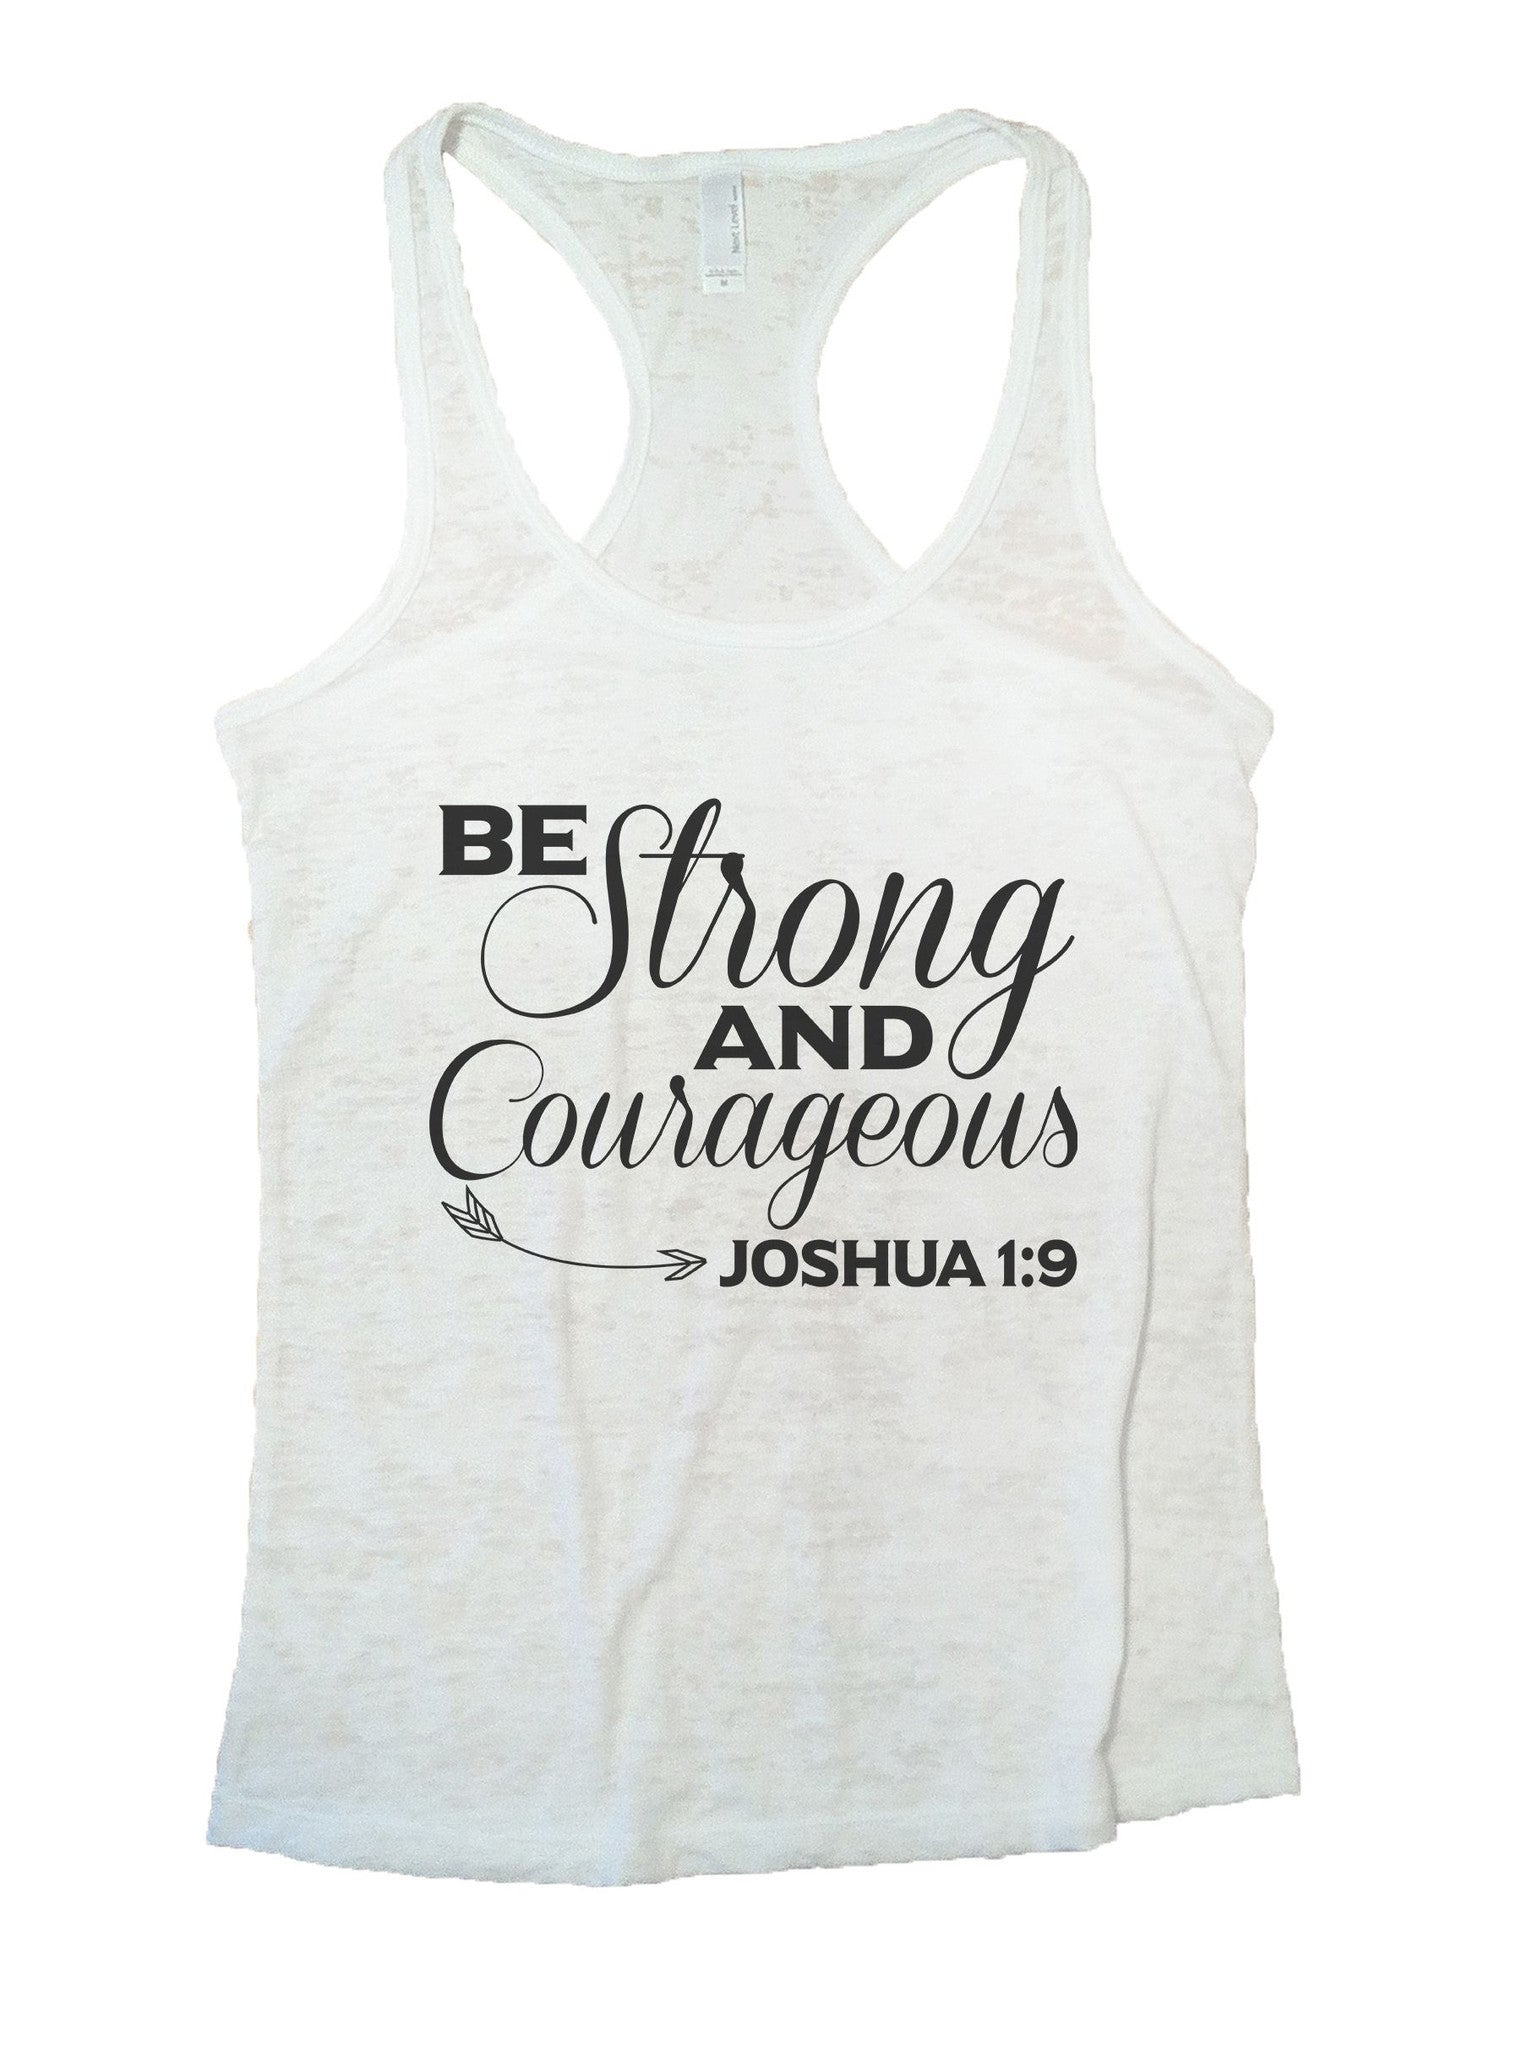 Be Strong And Courageous Joshua 1:9 Burnout Tank Top By BurnoutTankTops.com - 948 - Funny Shirts Tank Tops Burnouts and Triblends  - 6